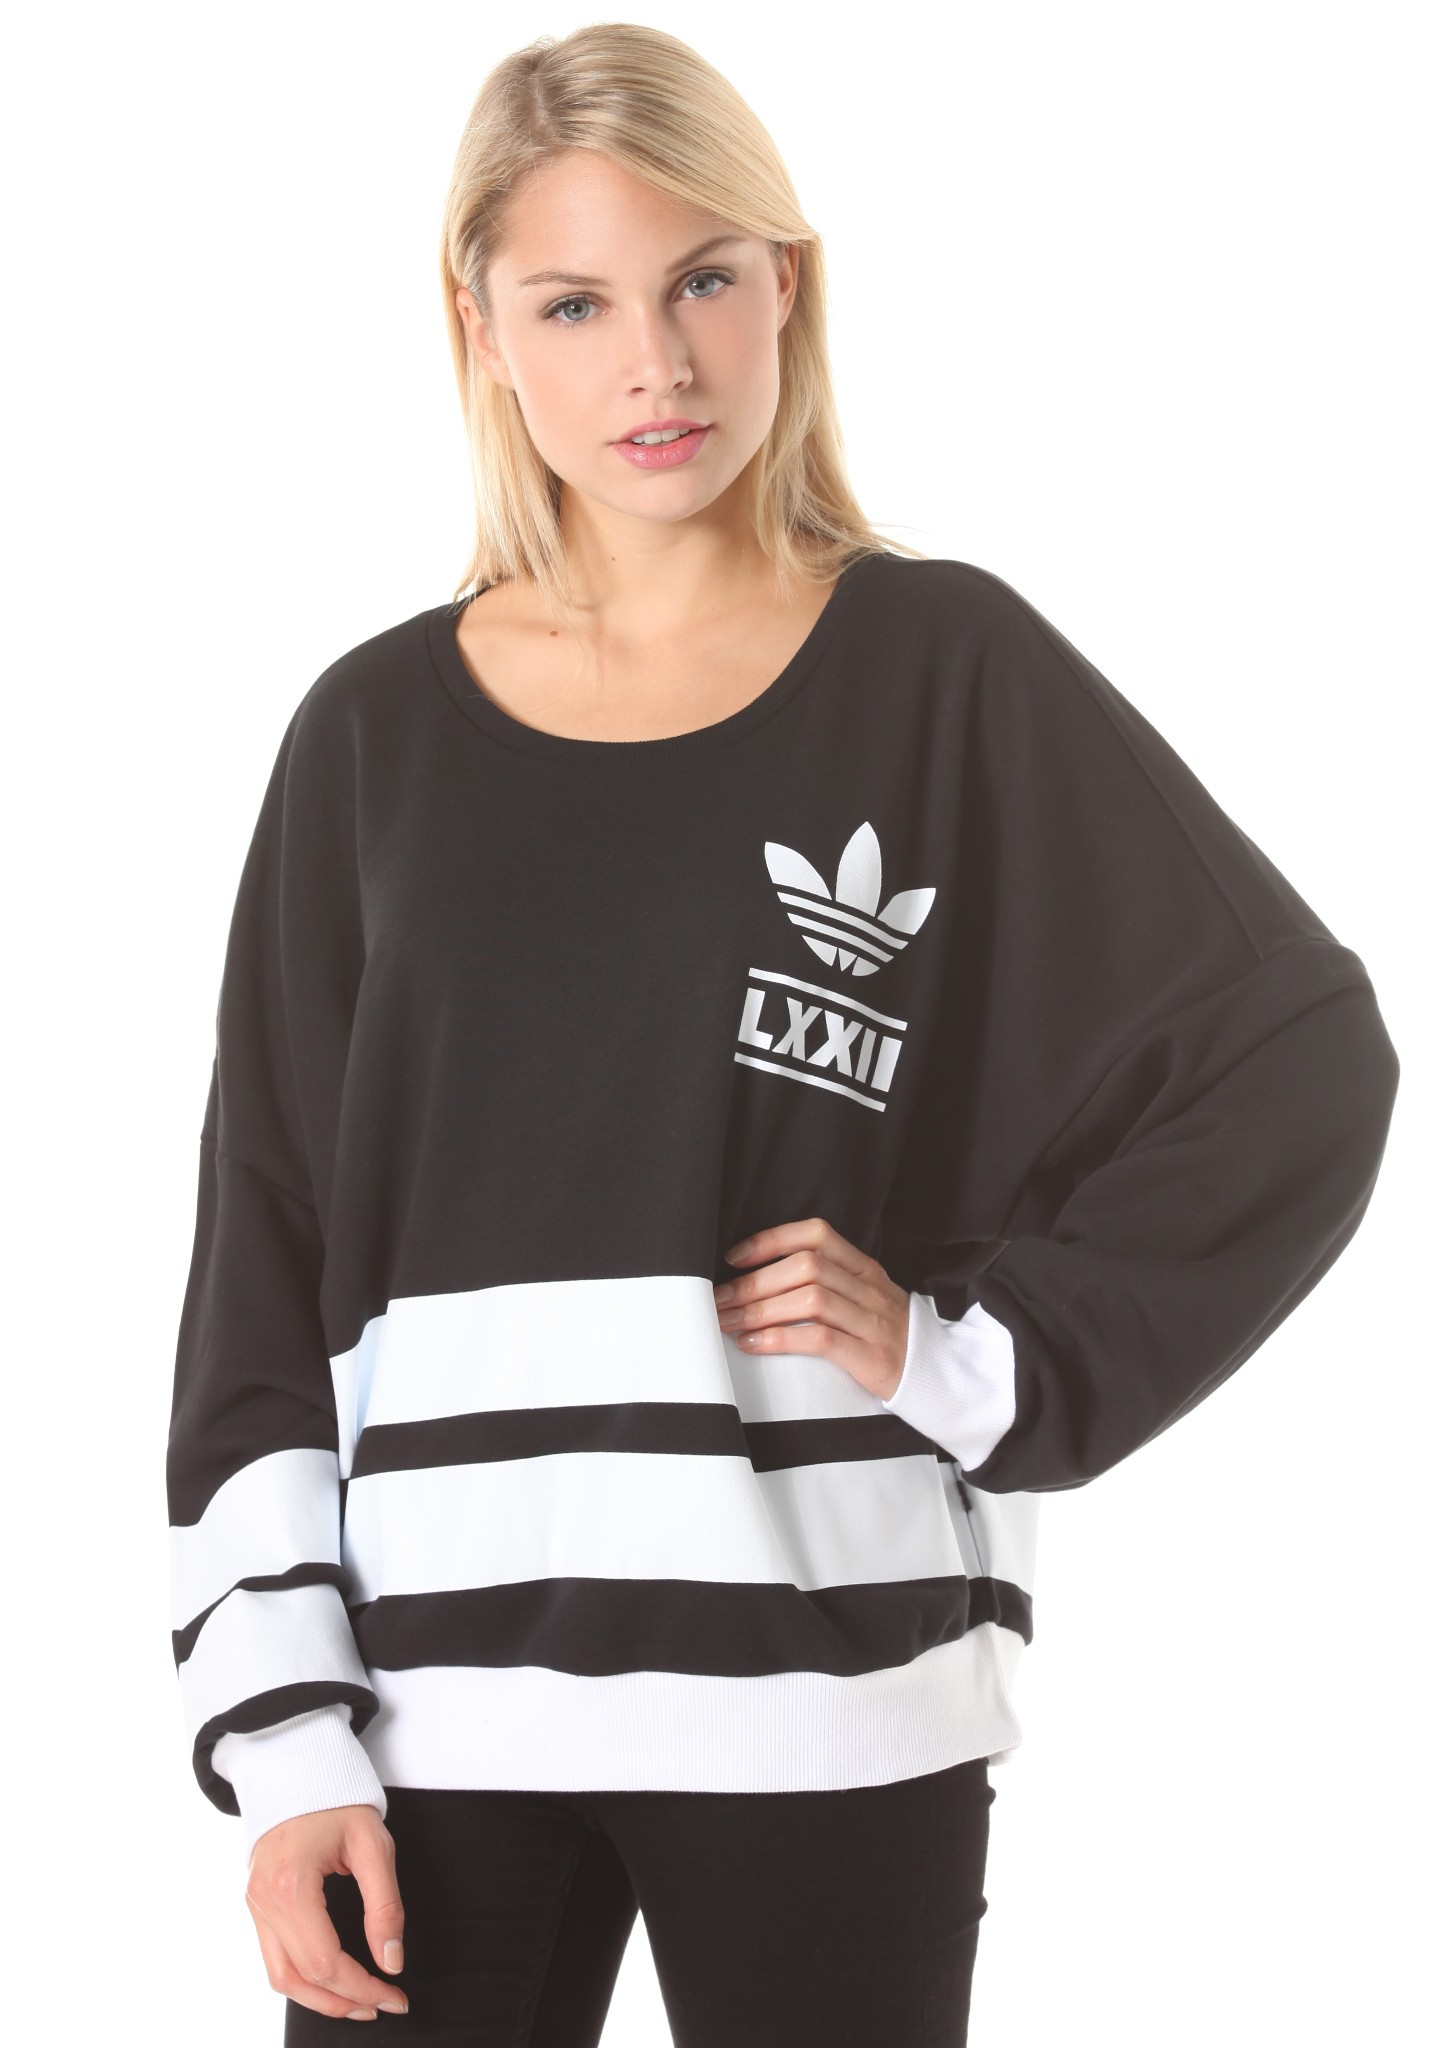 neu adidas brln 3str damen sweatshirt ebay. Black Bedroom Furniture Sets. Home Design Ideas